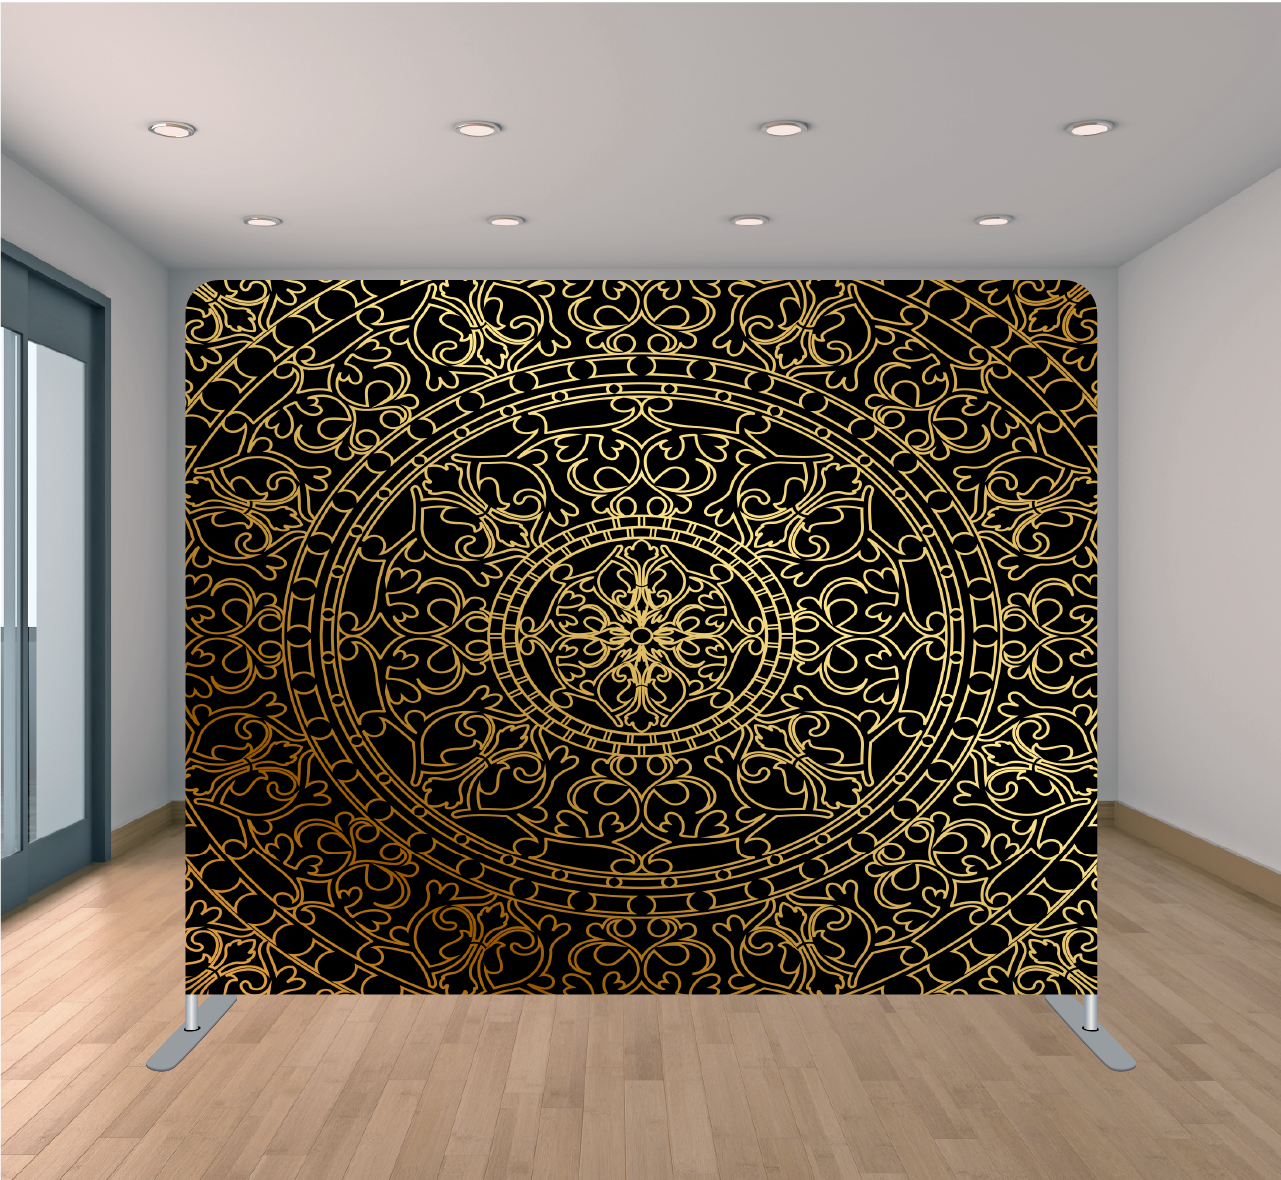 8x8ft Pillowcase Tension Backdrop- Gold Oriental